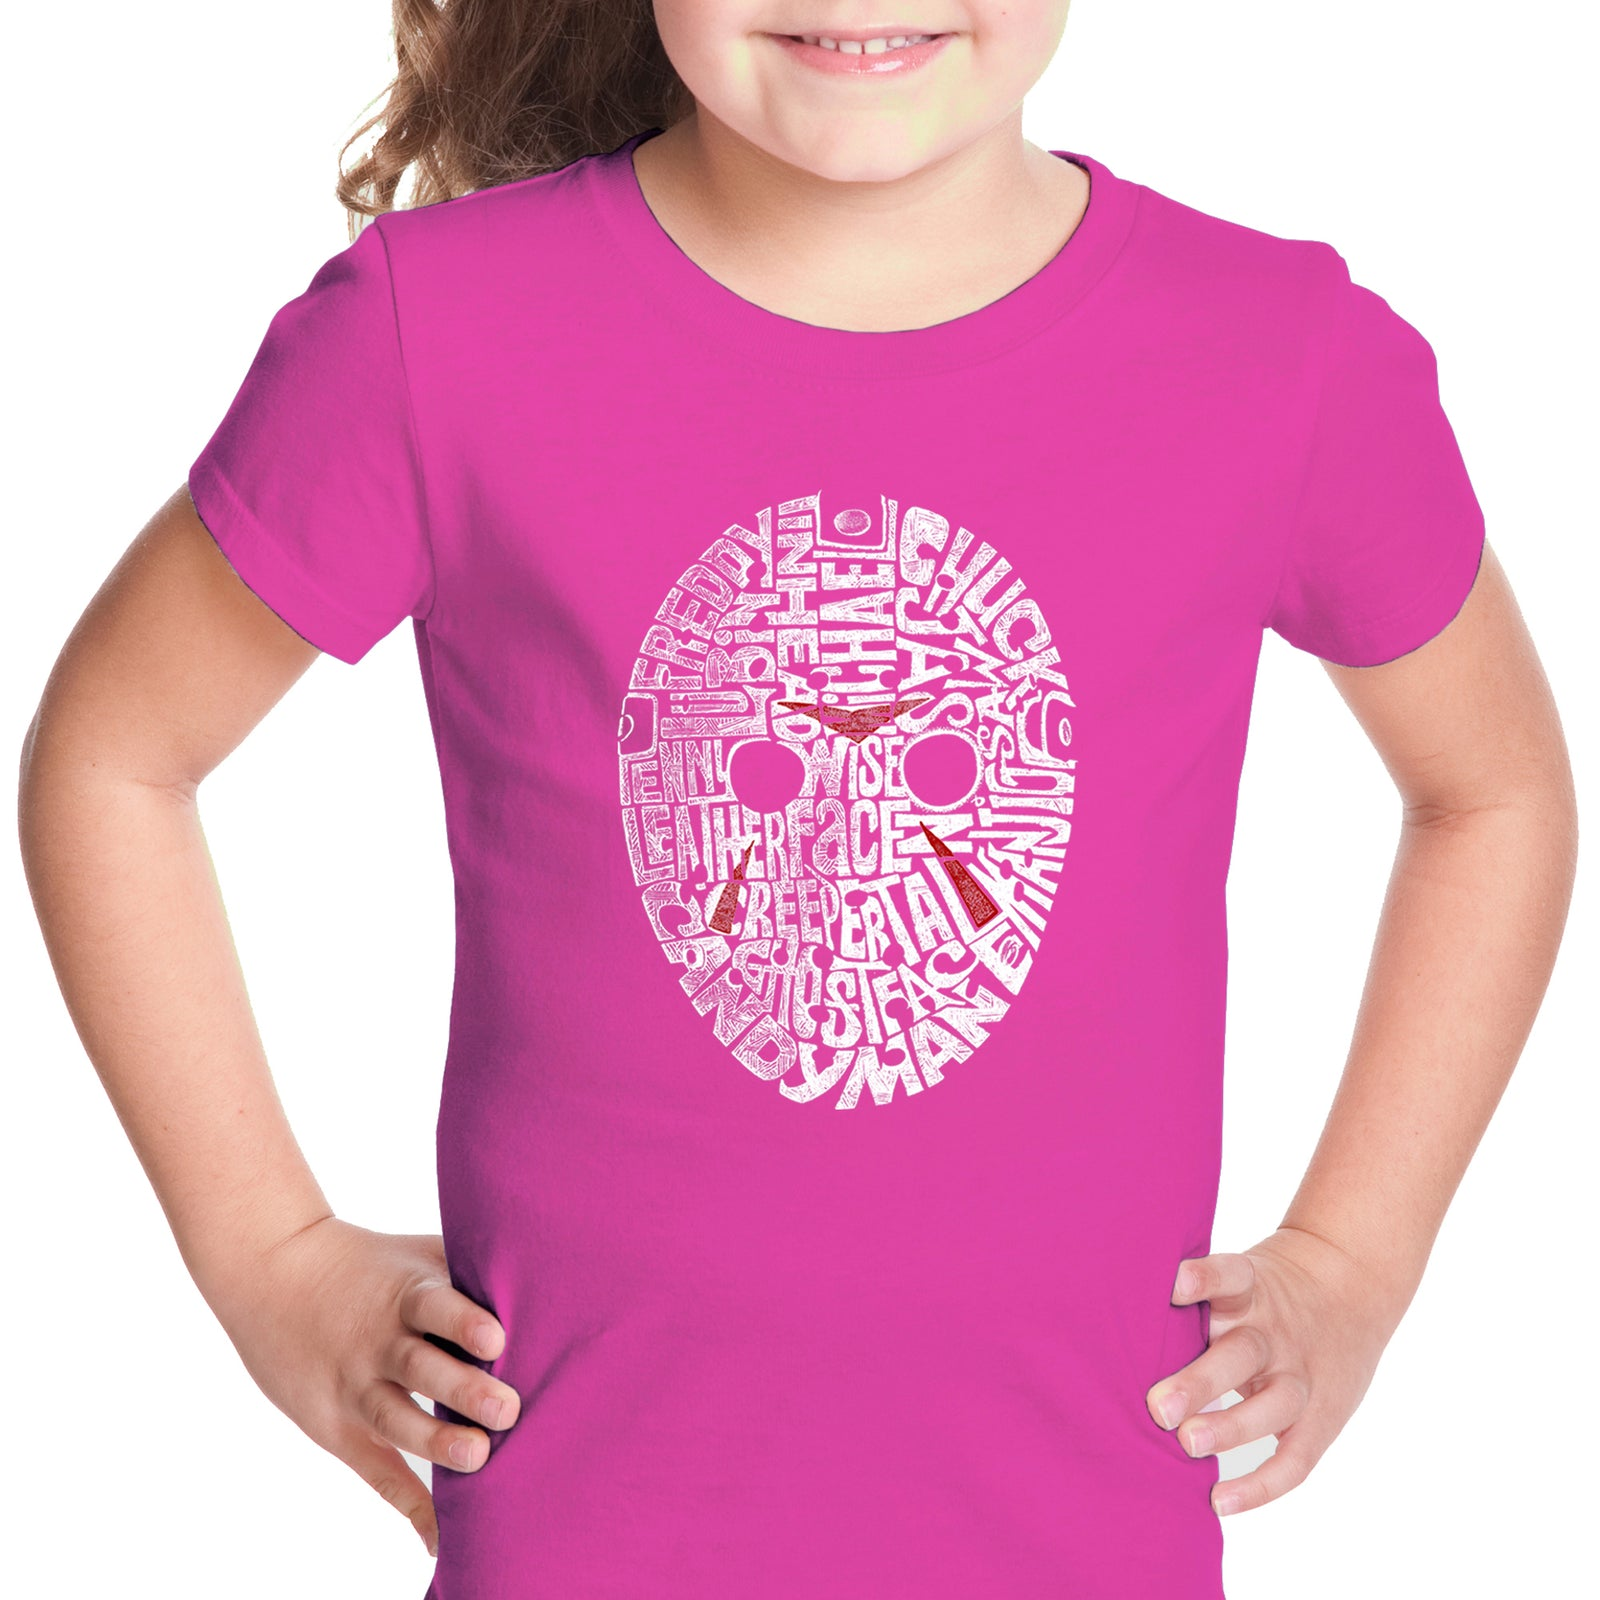 Girl's T-shirt - Slasher Movie Villians